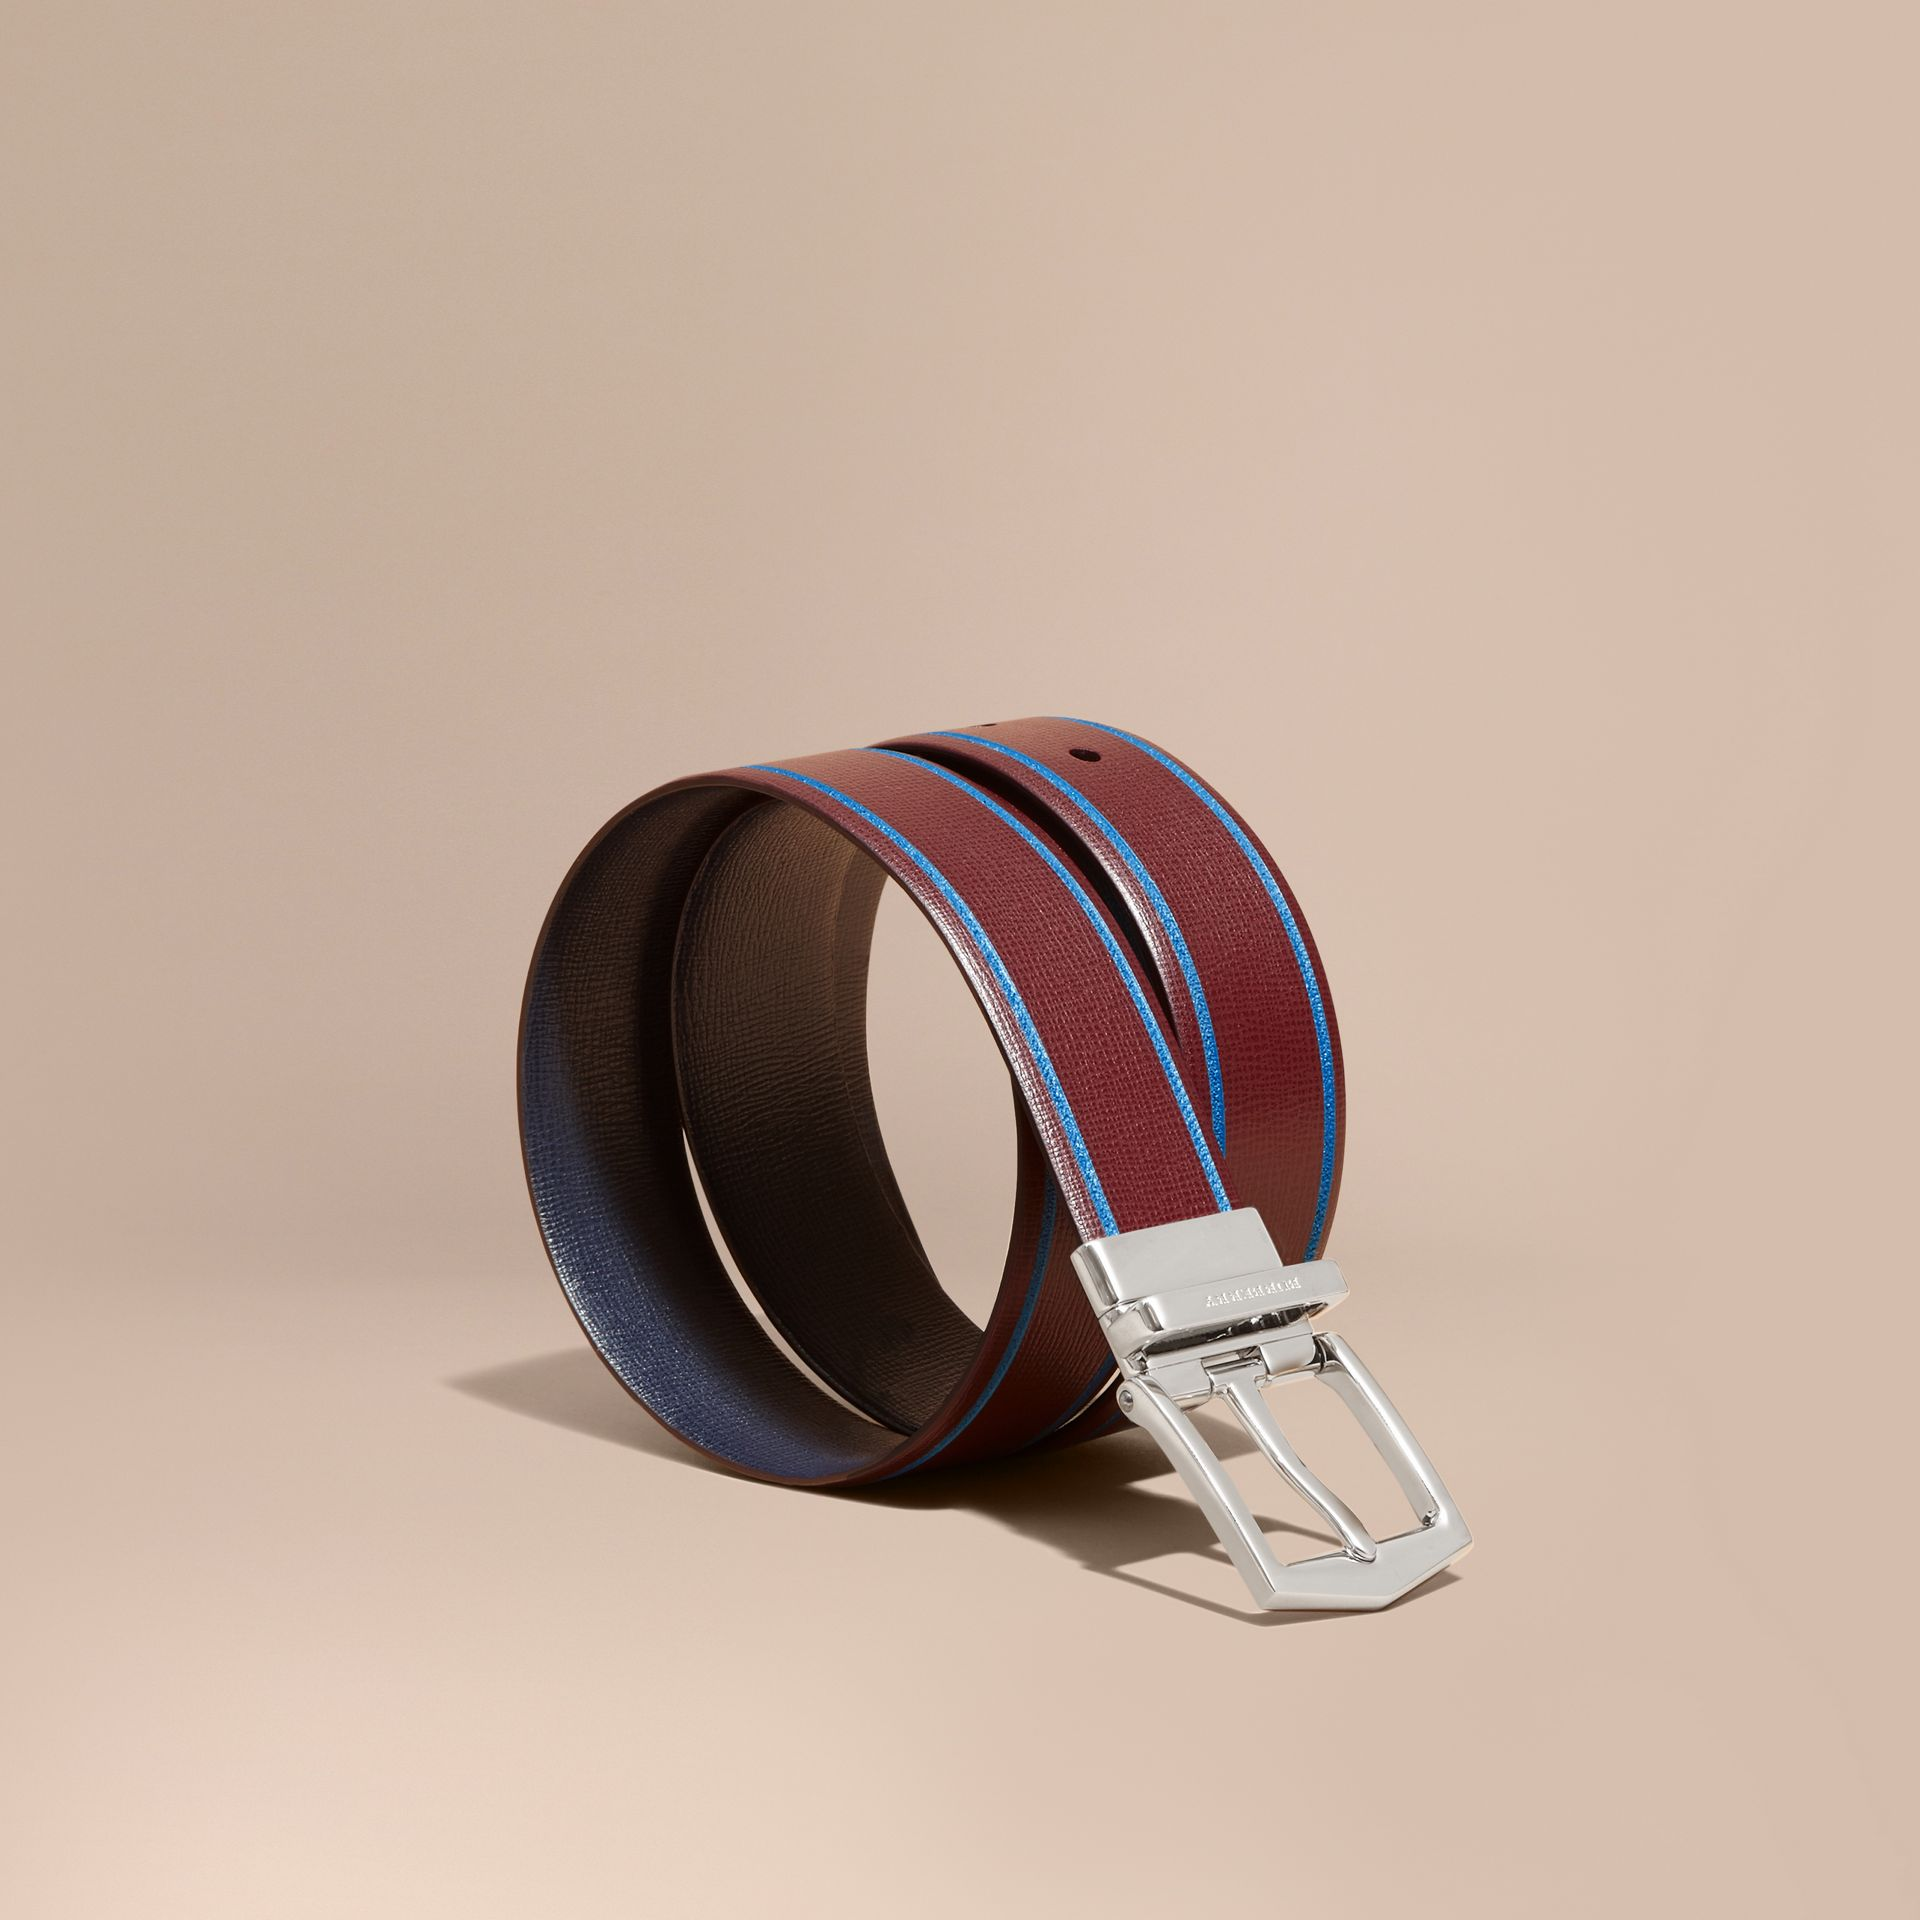 Burgundy red/dark navy Reversible Border Detail London Leather Belt Burgundy Red/dark Navy - gallery image 1